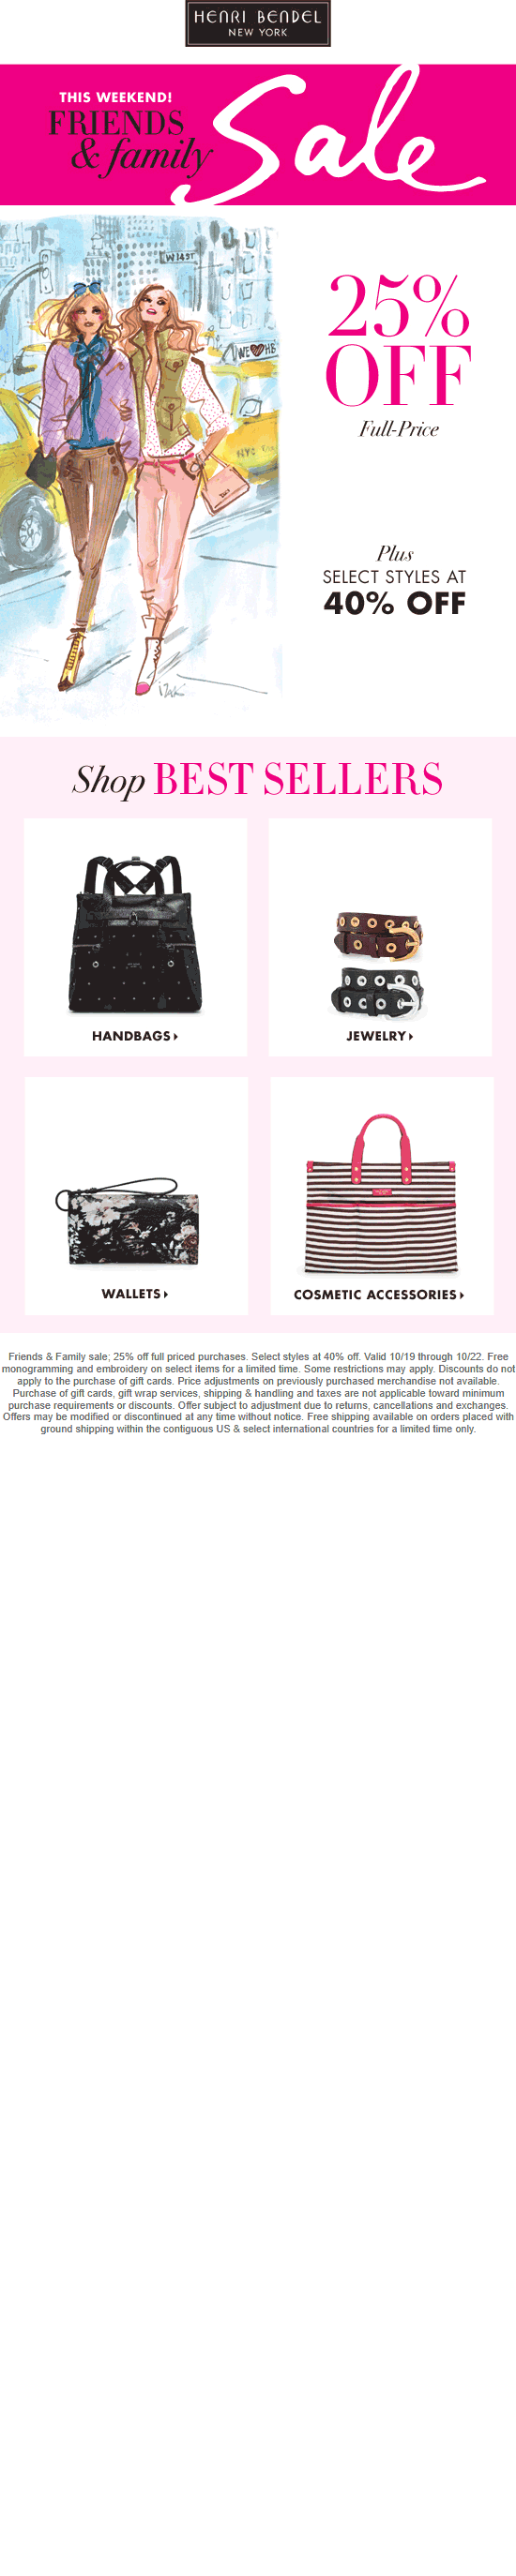 Henri Bendel Coupon October 2018 25-40% off at Henri Bendel, ditto online